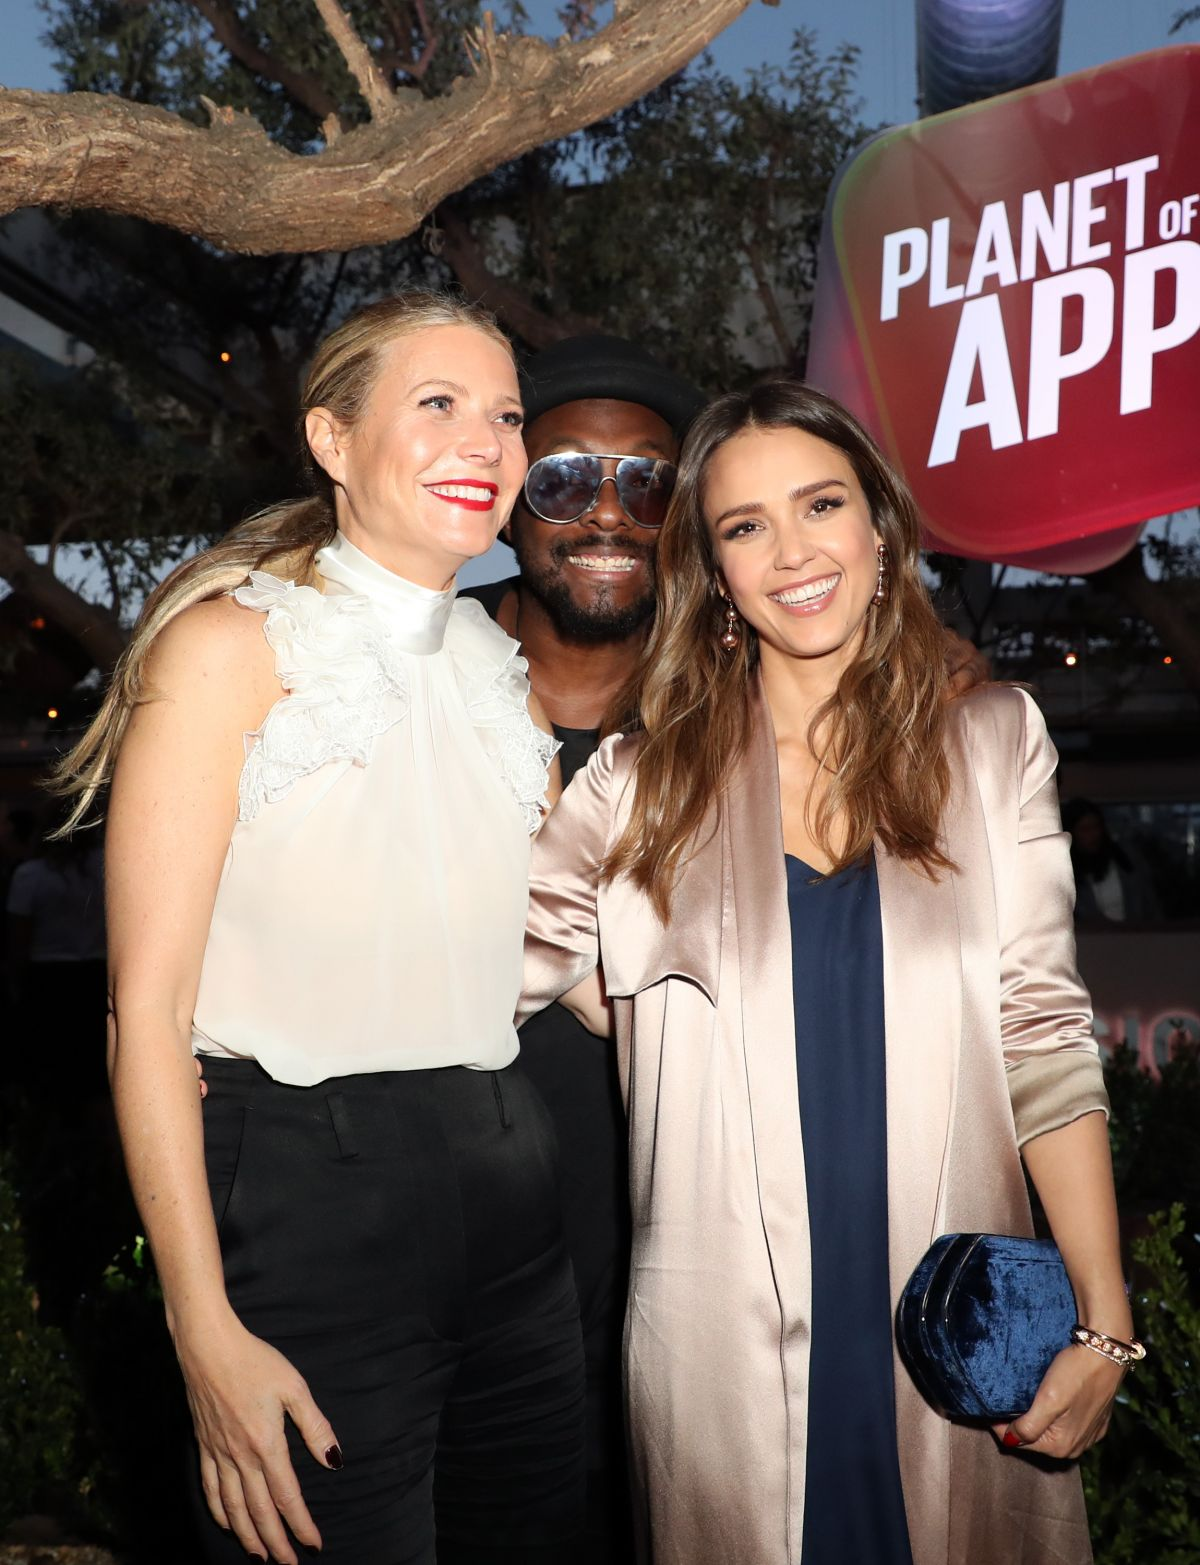 jessica-alba-at-planet-of-the-apps-season-1-premiere-in-los-angeles-06-12-2017_2.jpg